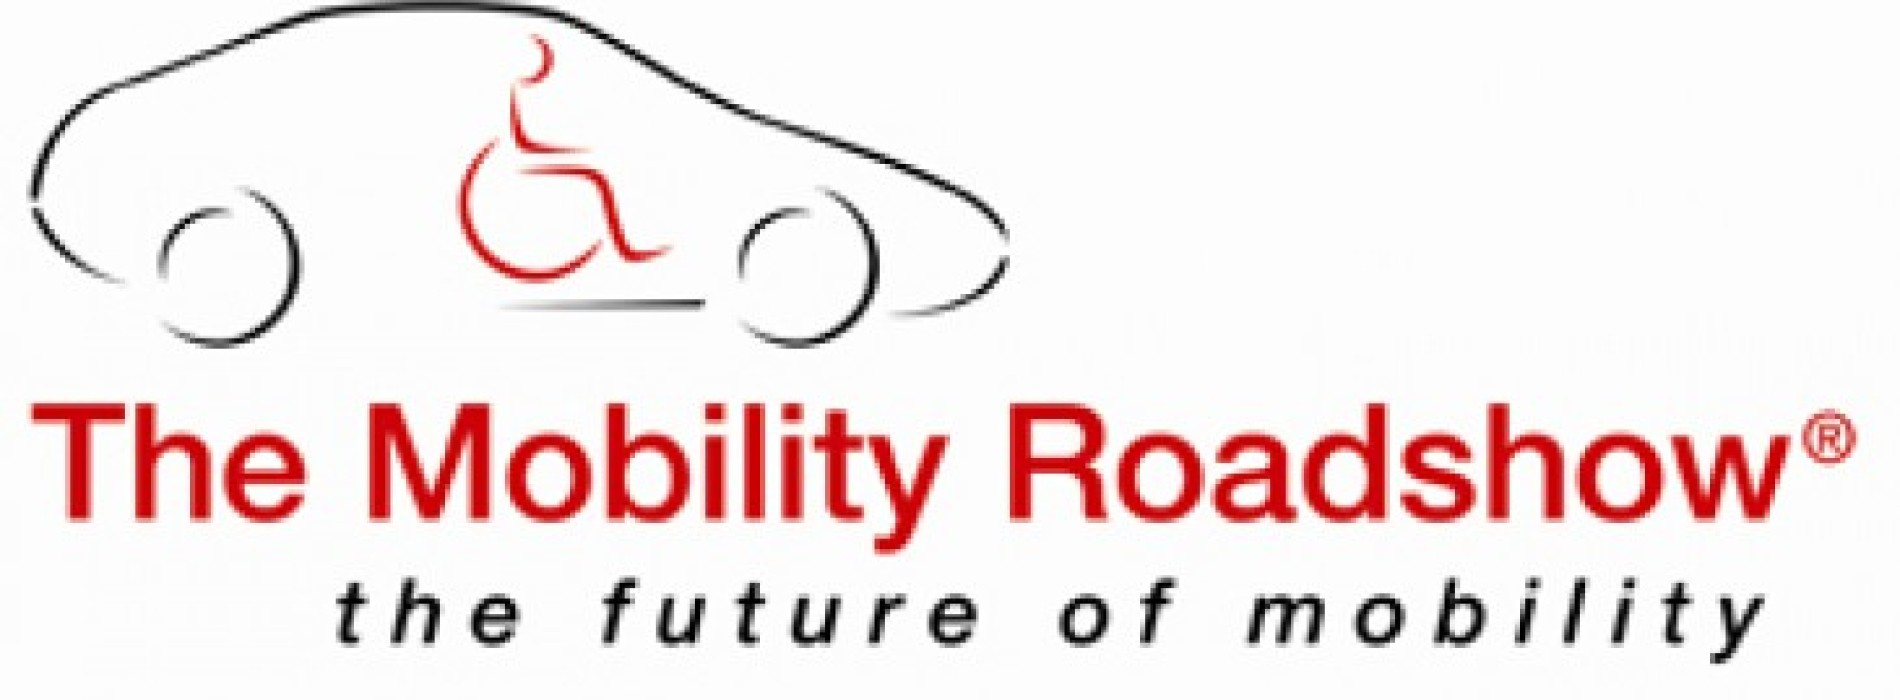 The Mobility Roadshow 2012